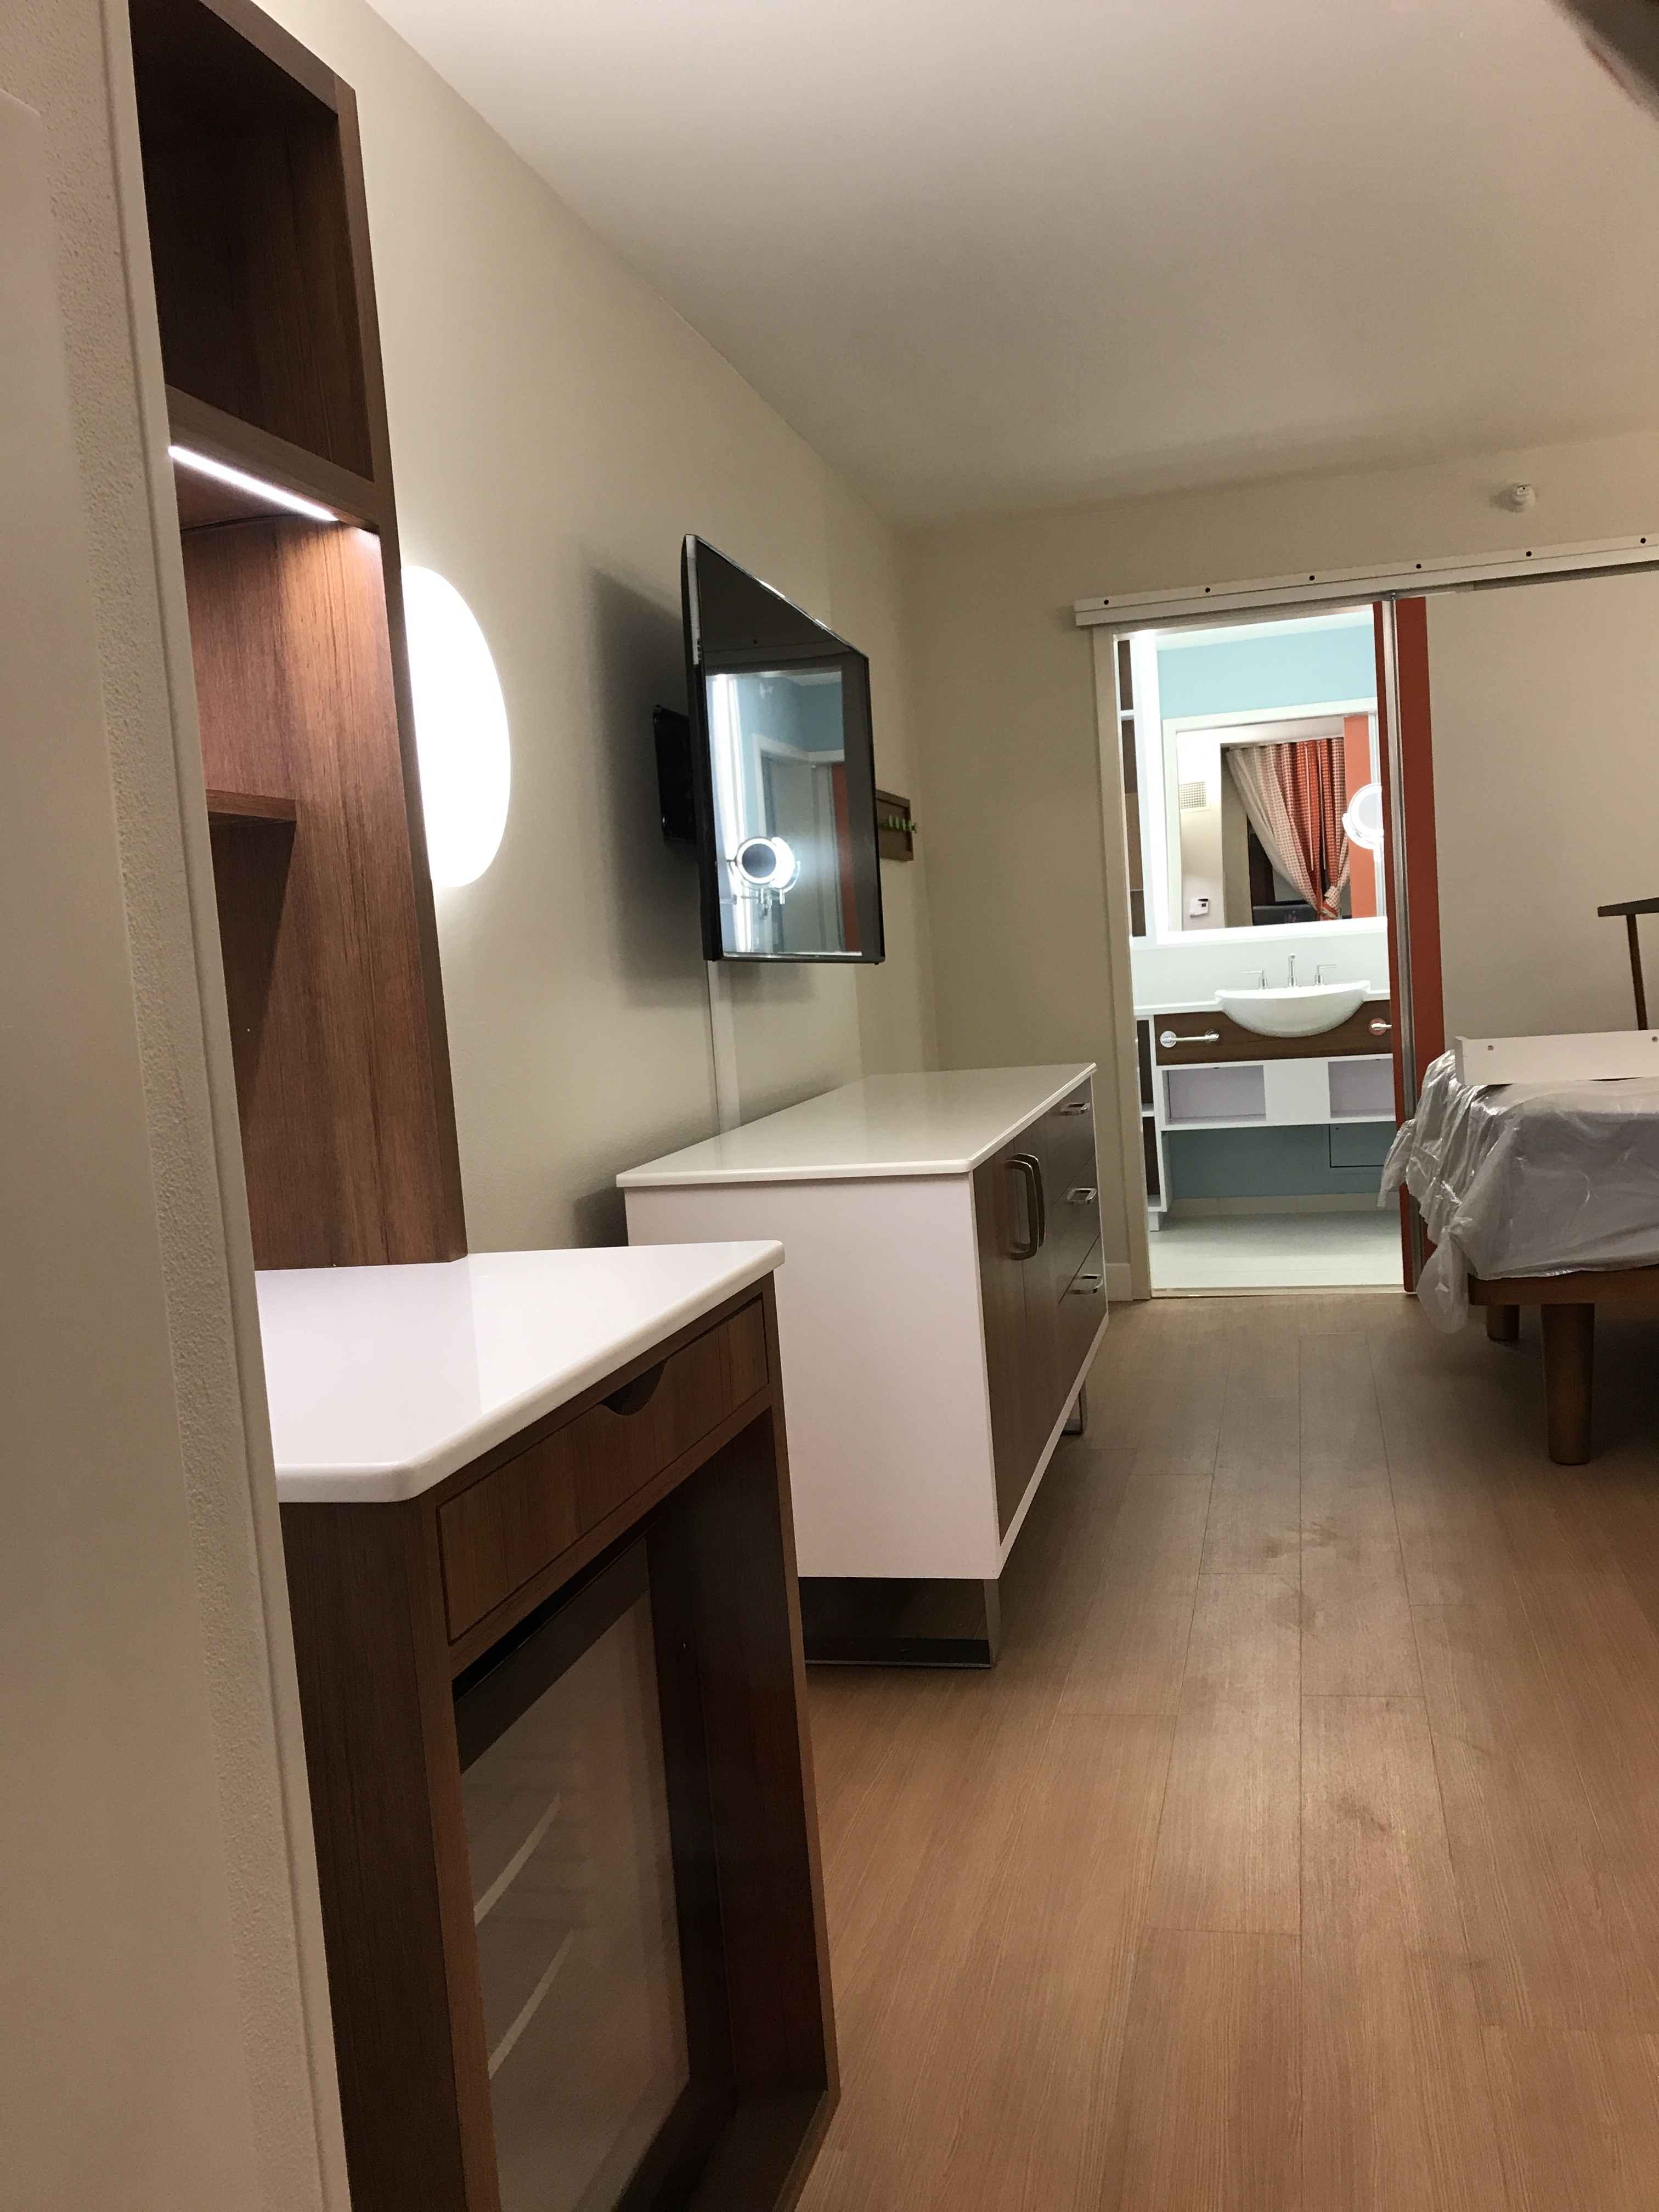 Photos Of Refurbished Rooms At Pop Century